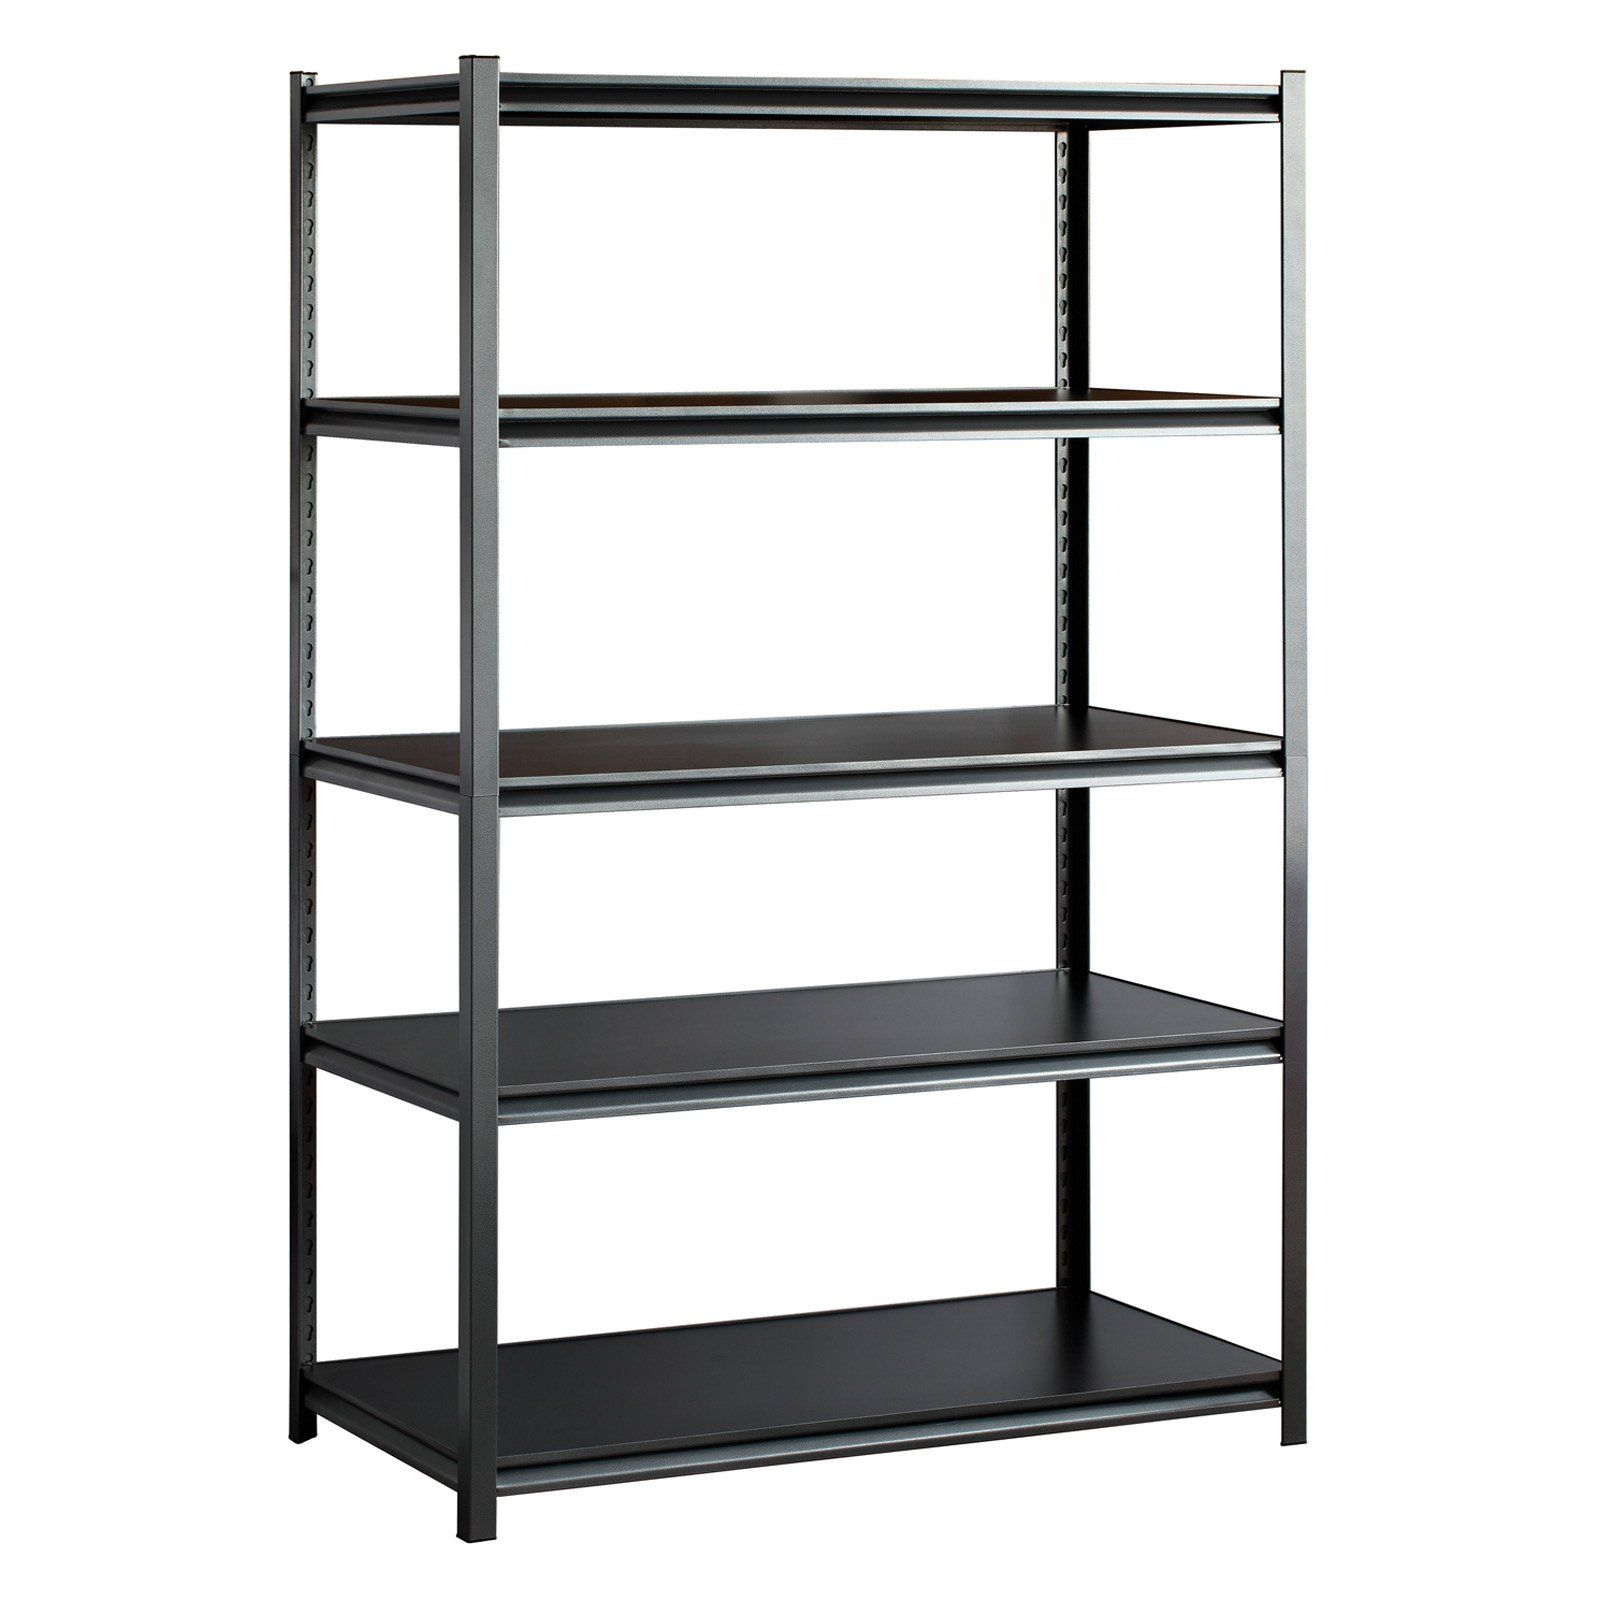 muscle rack 5 shelf steel garage storage shelving unit from rh pinterest co uk